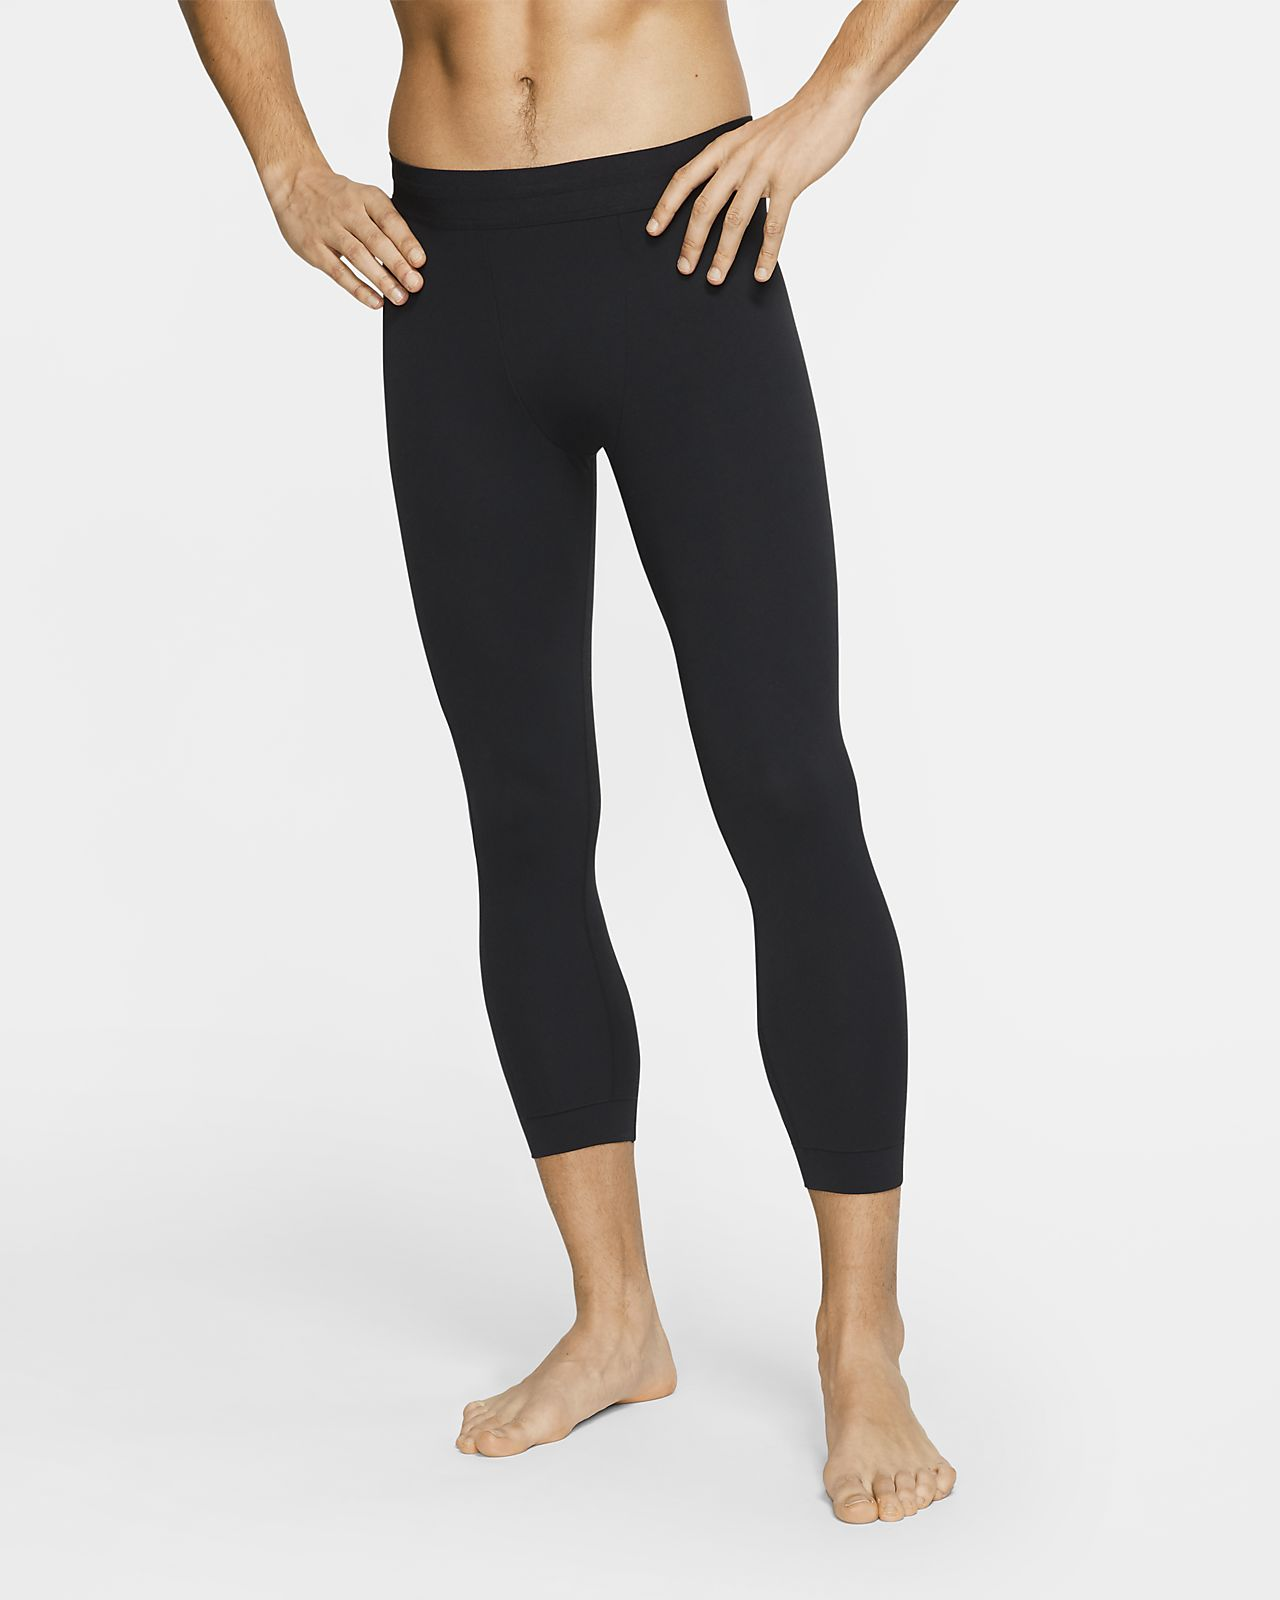 Nike Yoga Dri-FIT Men's Infinalon 3/4 Tights